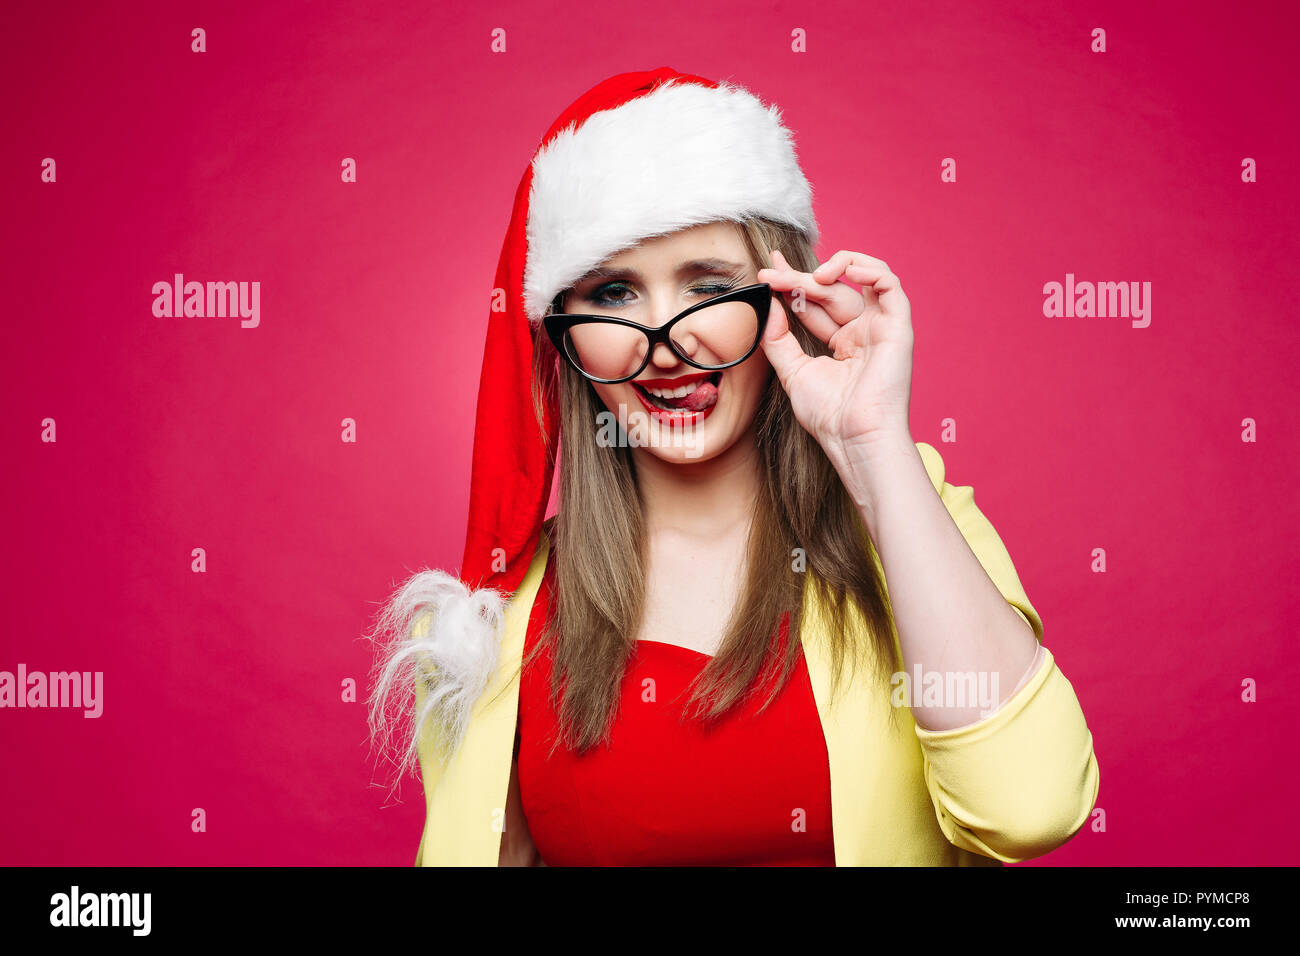 Girl in santa hat and glasses flirting with camera. Stock Photo